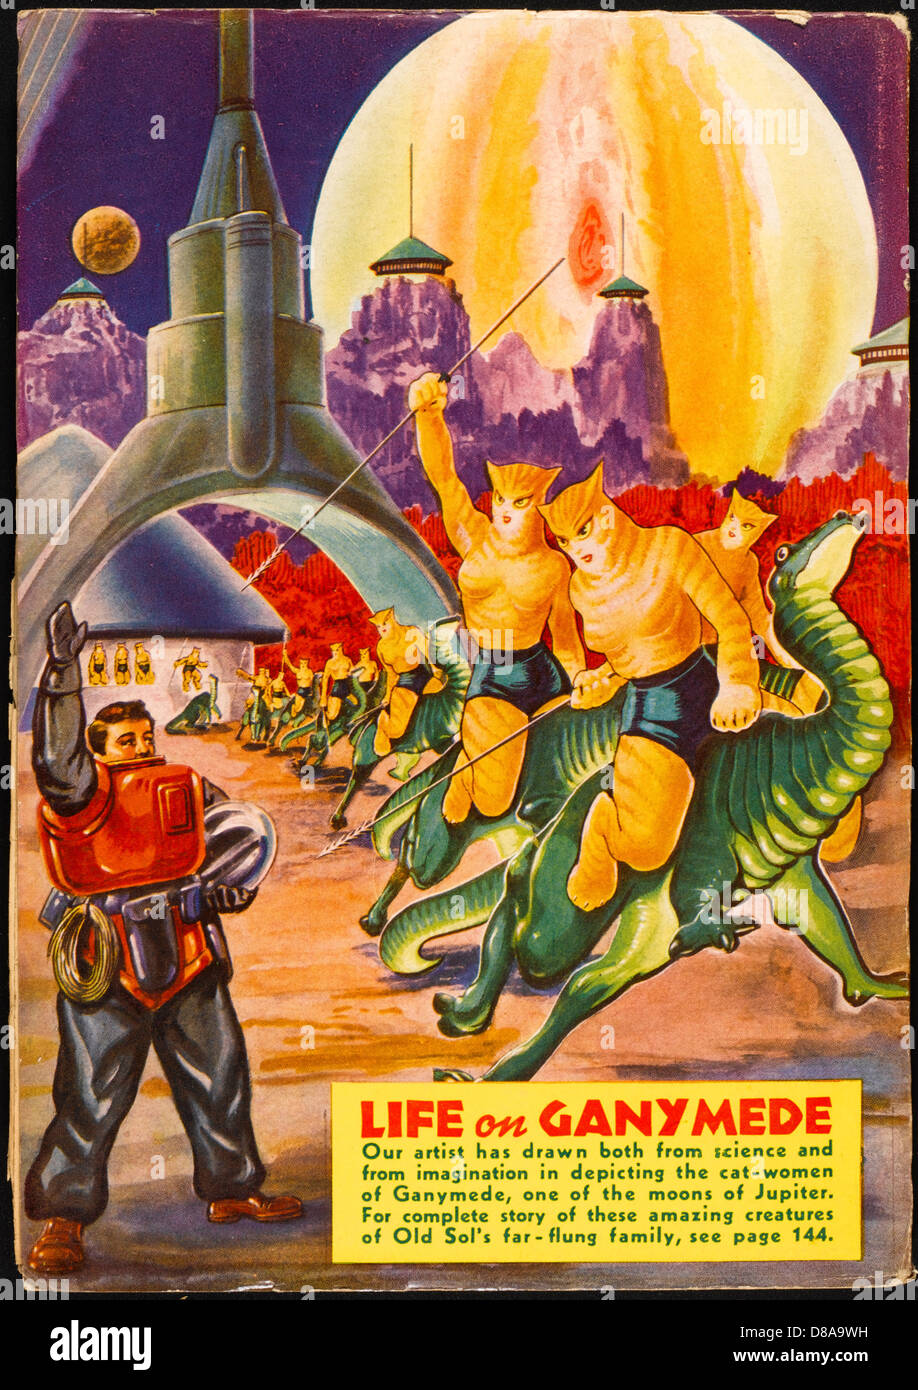 Life On Ganymede - Stock Image